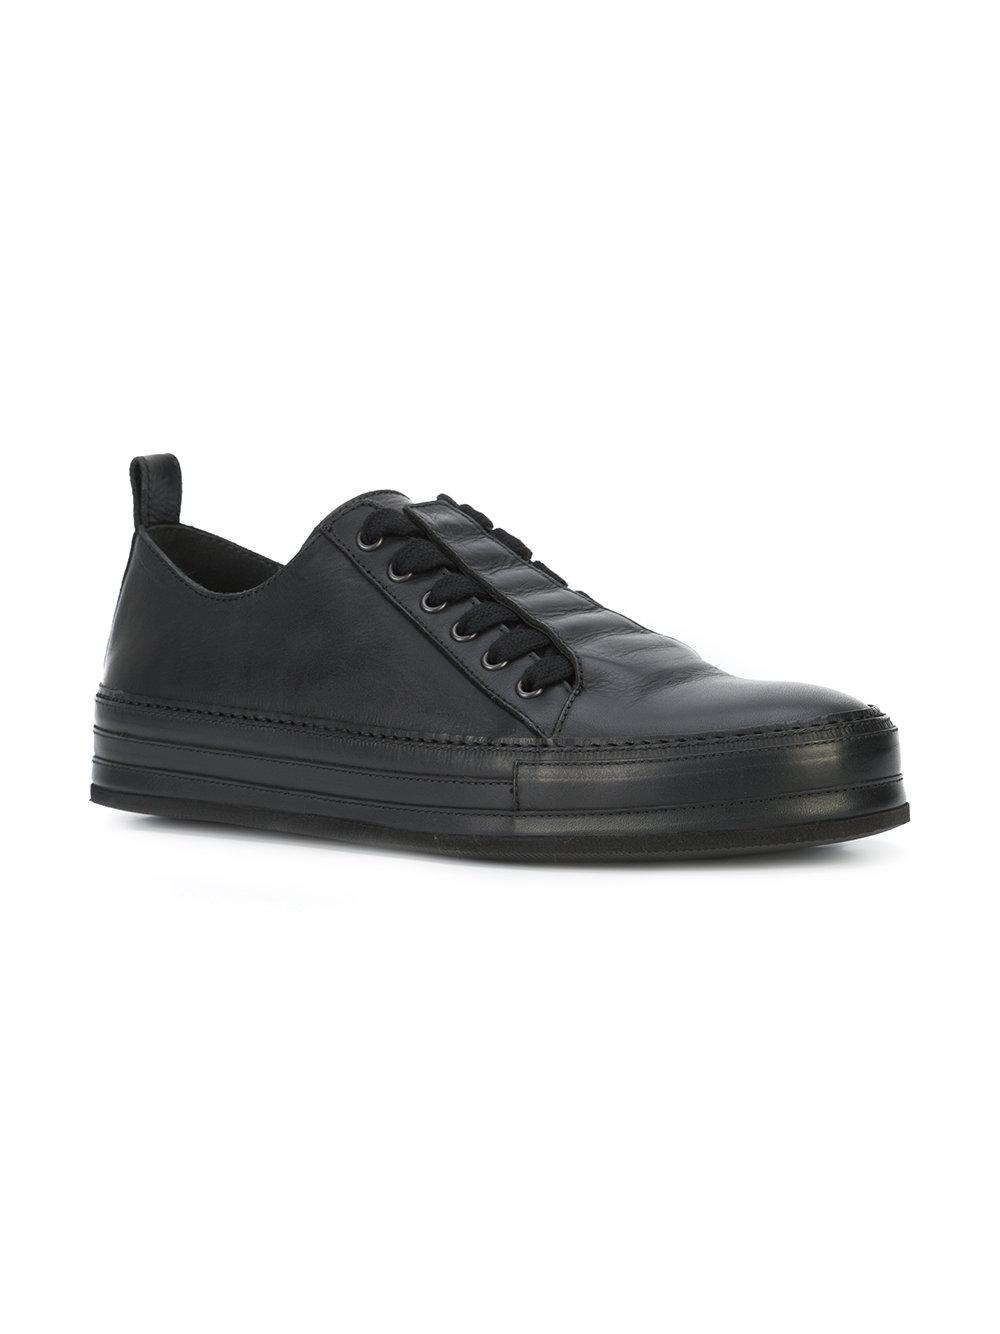 Ann Demeulemeester Leather Top Sneakers in Black